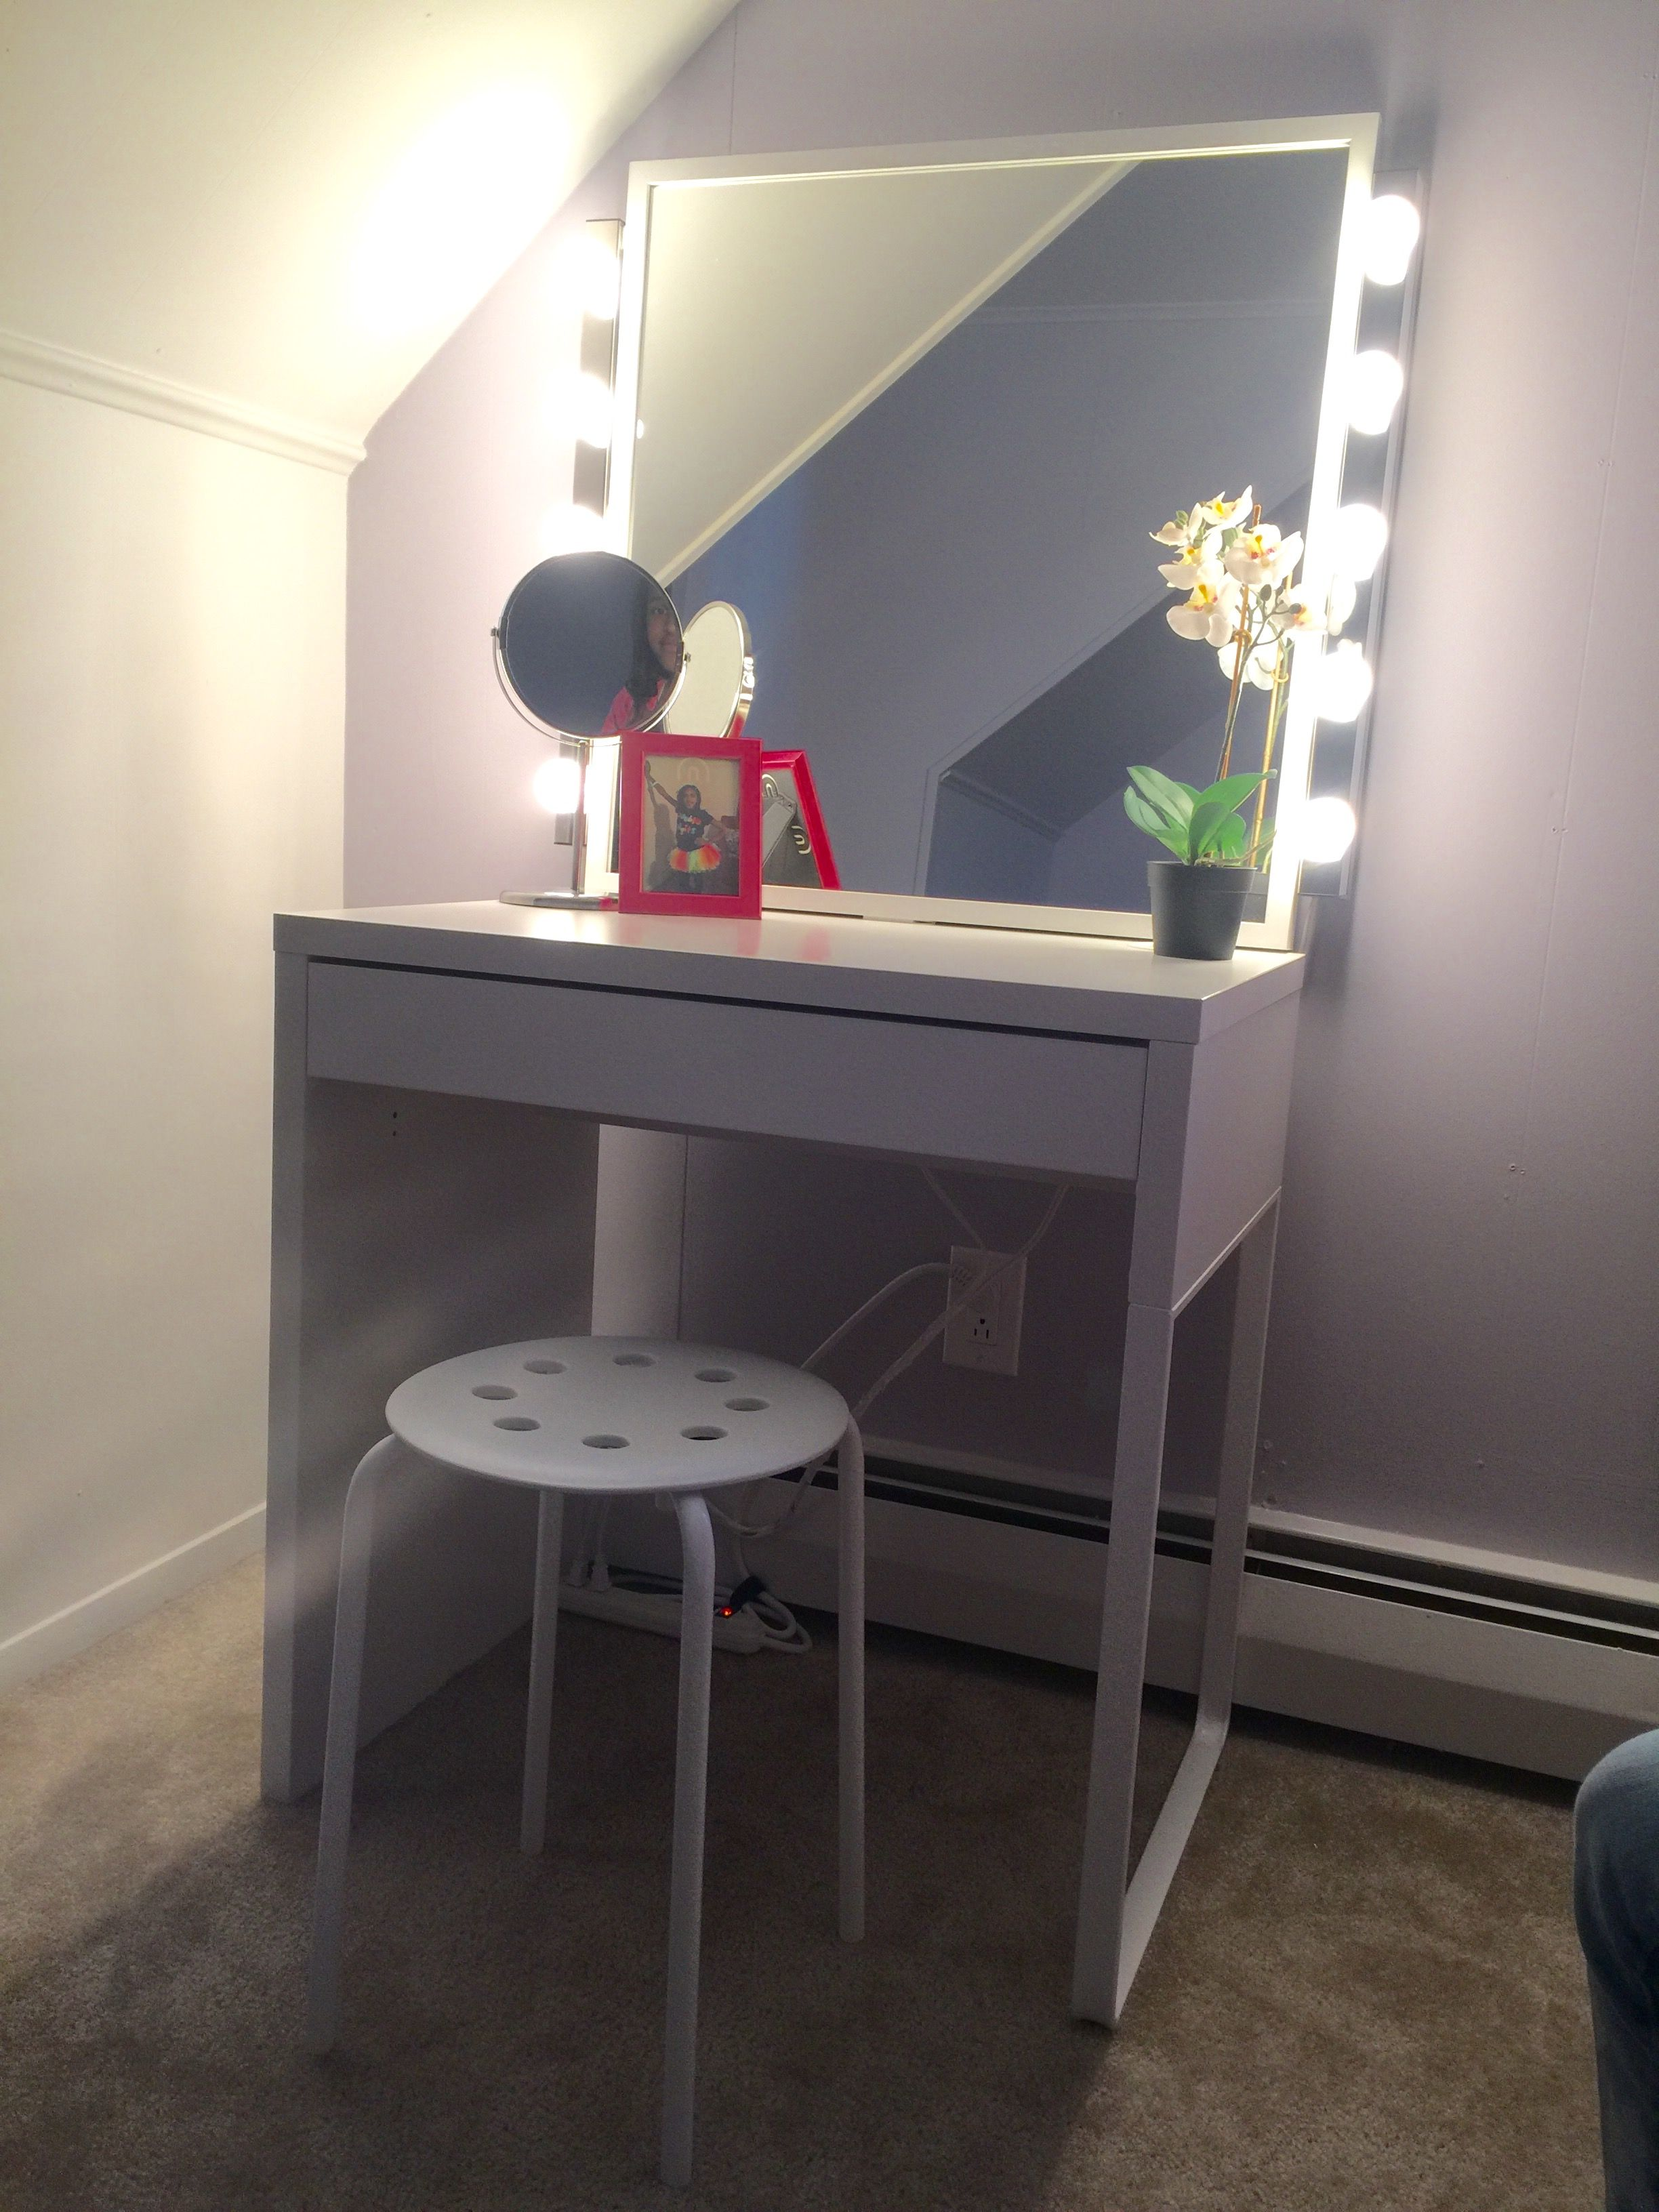 Hollywood Mirror Lights Ikea Made With All Ikea Products Purchased Separately